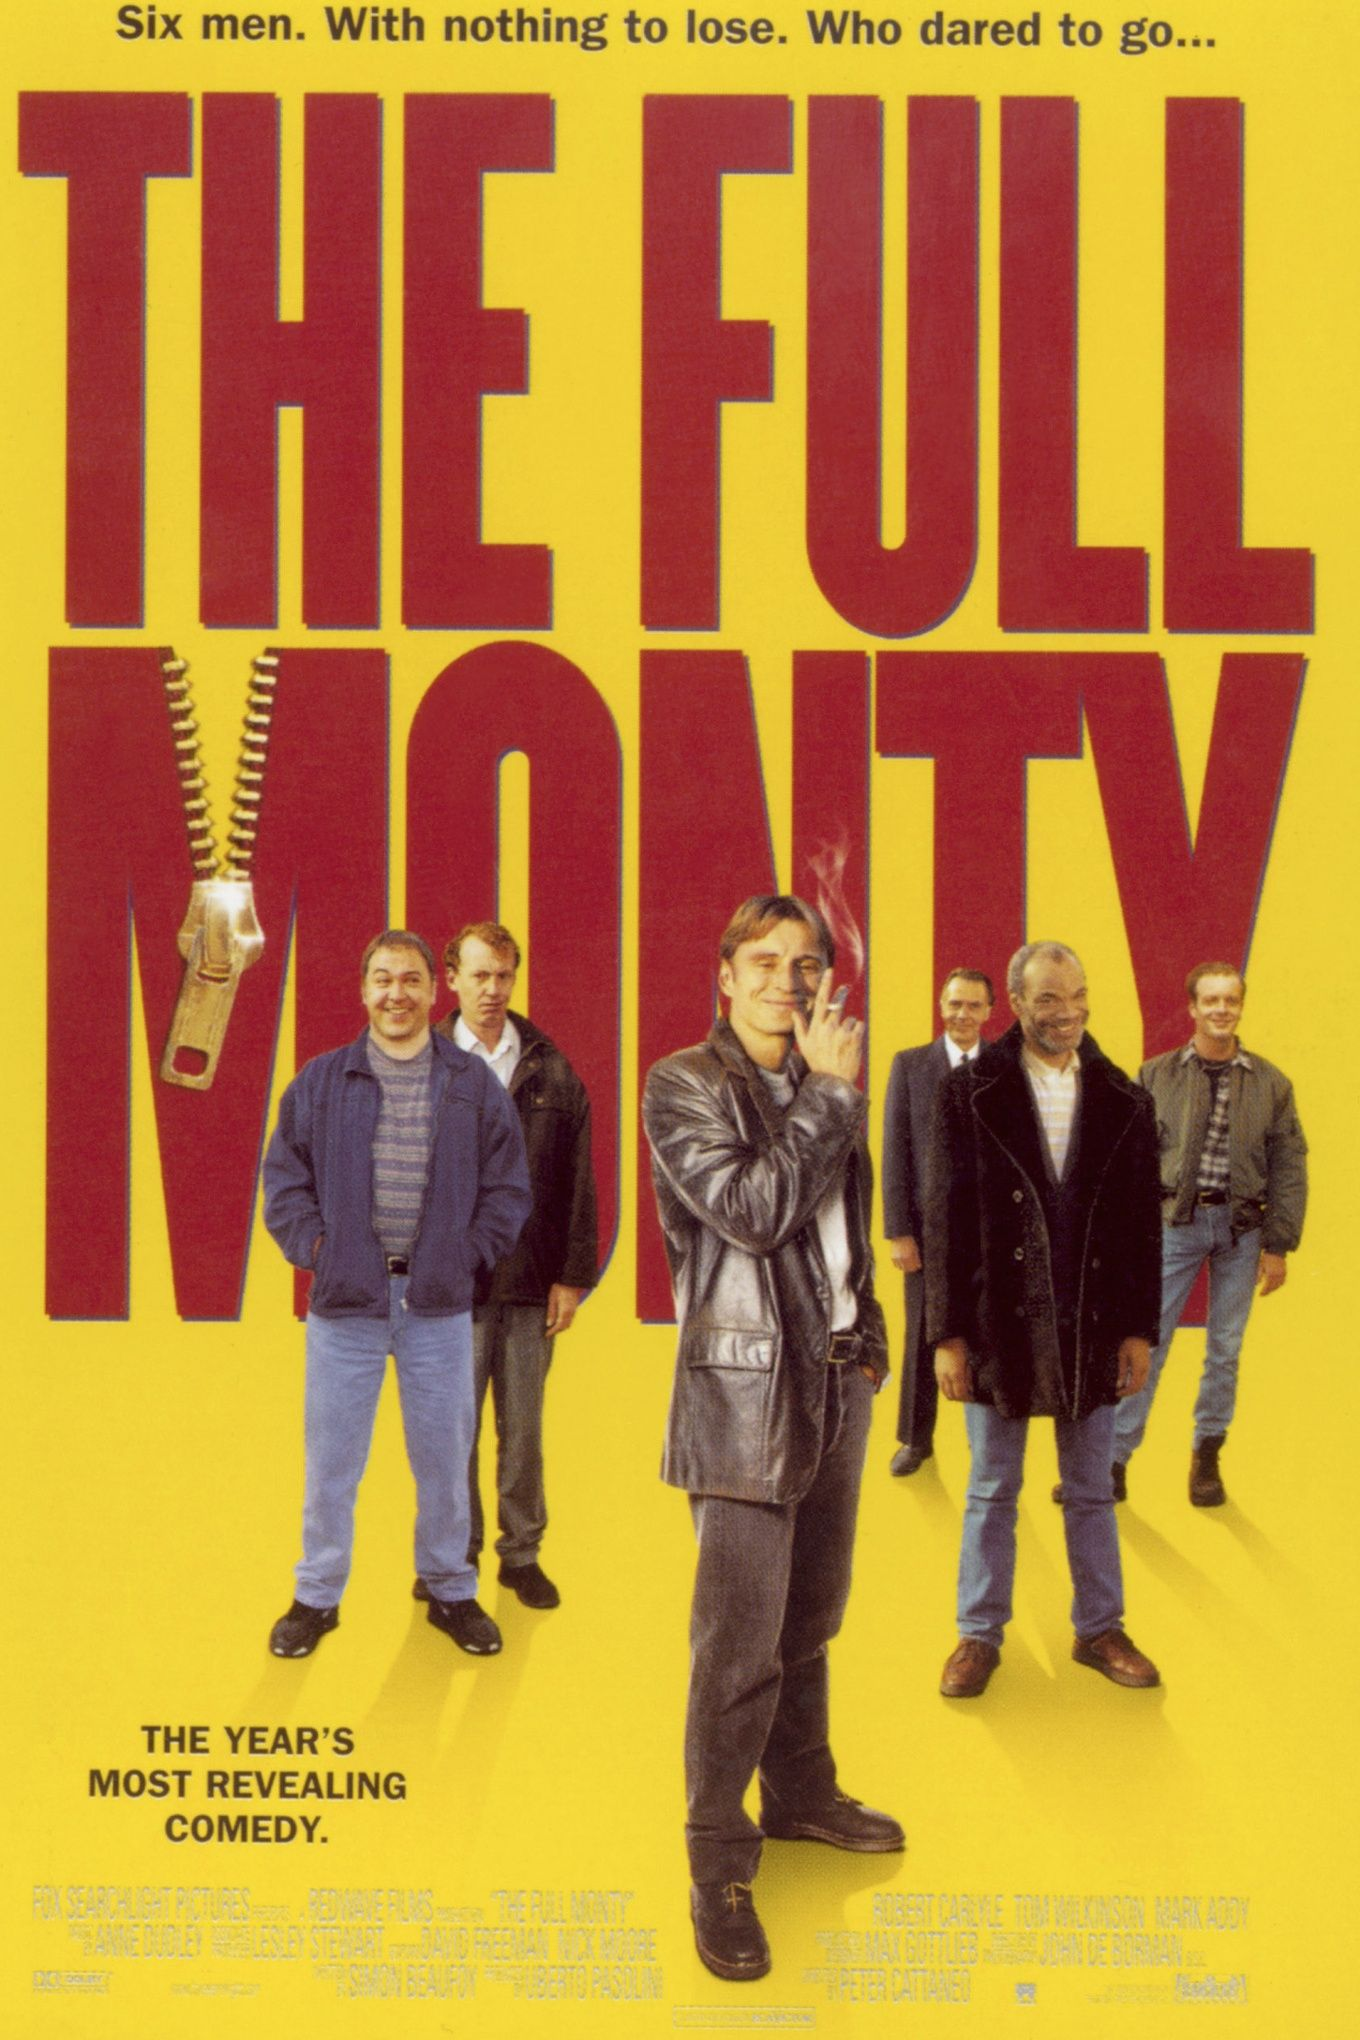 Cities in culture: has Sheffield finally shaken off its Full Monty image?